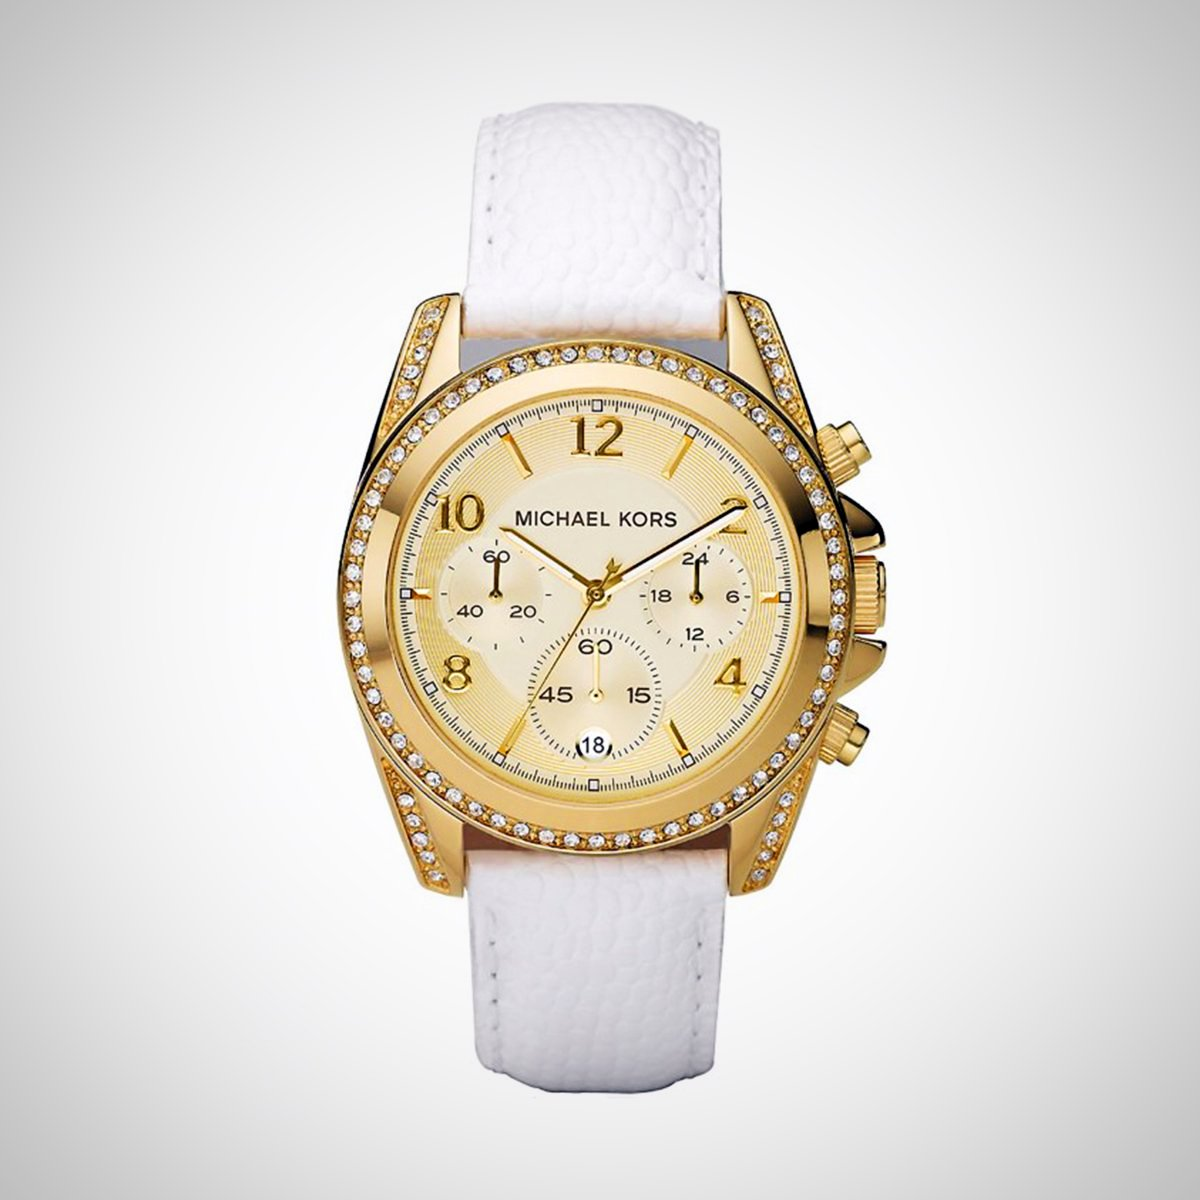 Michael Kors MK5460 Ladies' Chronograph Gold- tone Stainless Steel Case Watch